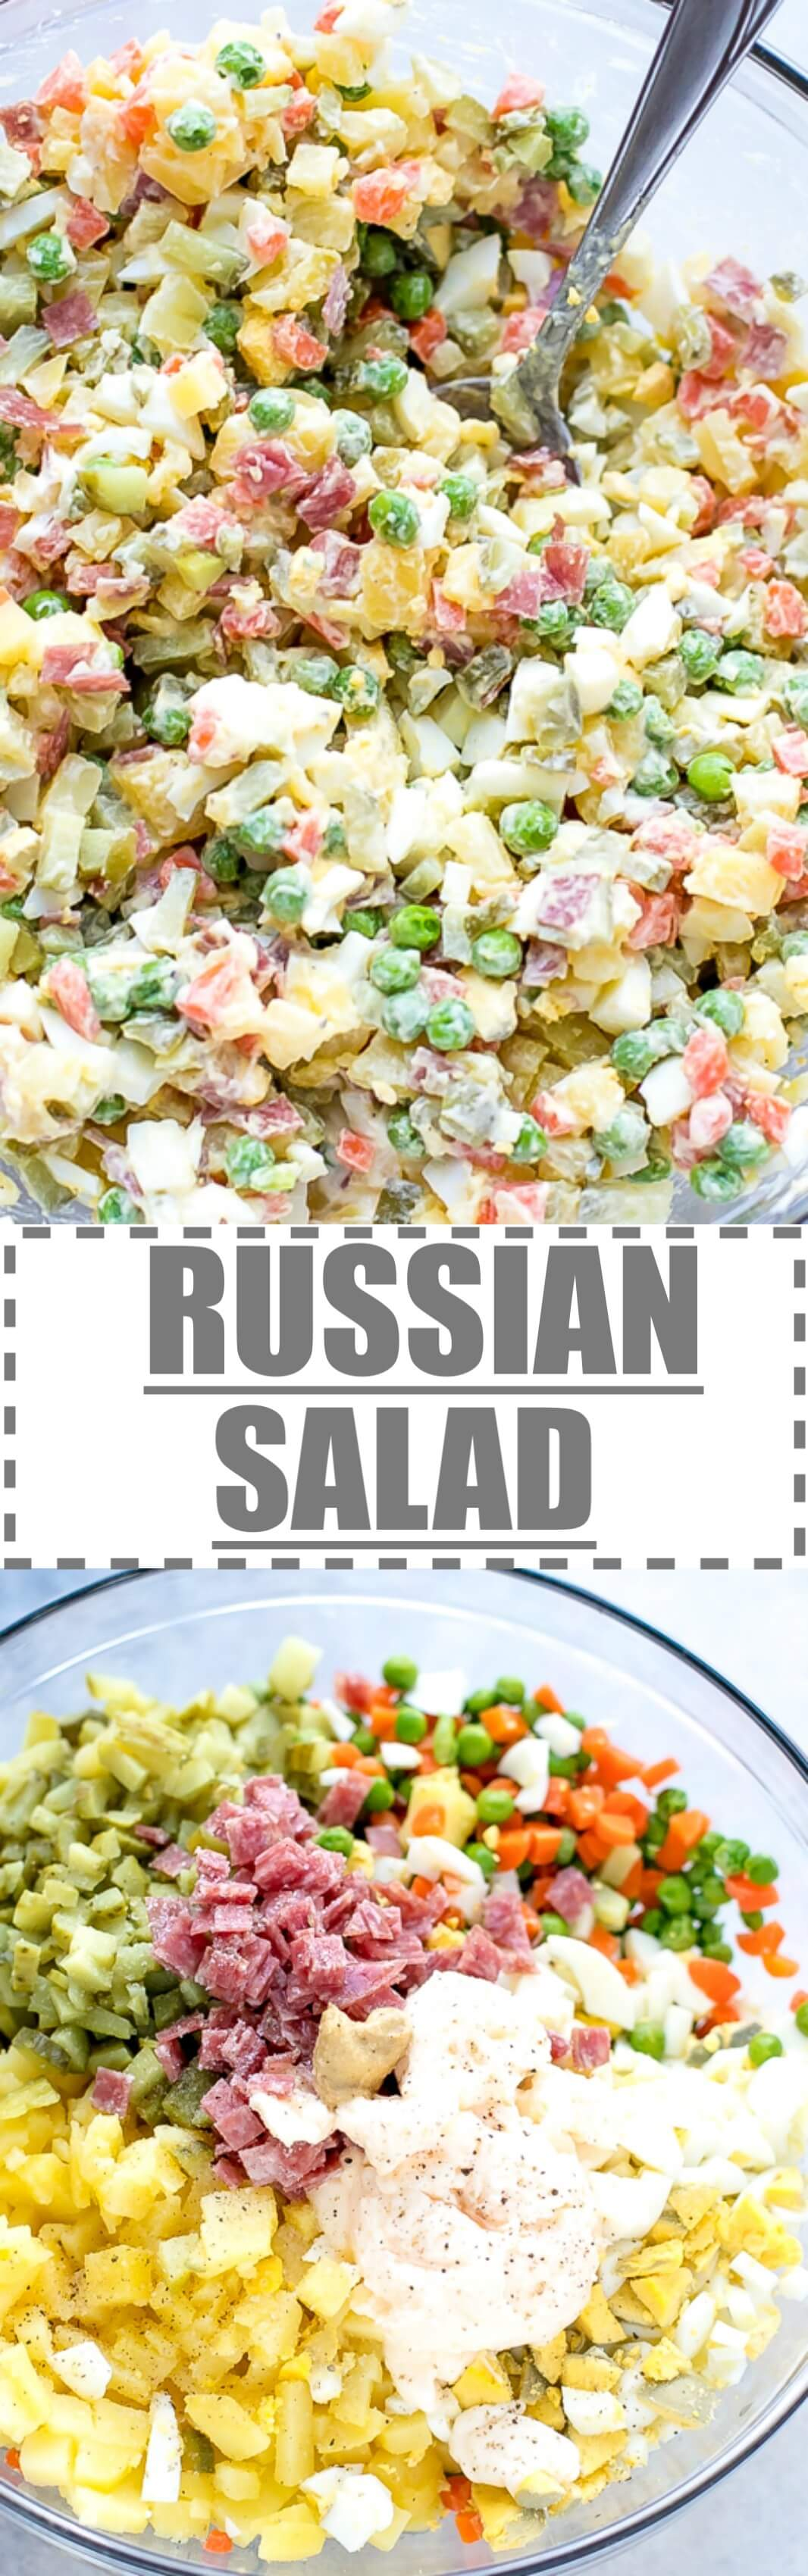 Olivier Russian Salad Recipe - this is the Bulgarian version of a very popular Russian salad, made with diced potatoes, carrots, pickles, eggs, peas, sometimes meat like ham (some people use bologna or salami) and a  creamy dressing made with mayo.